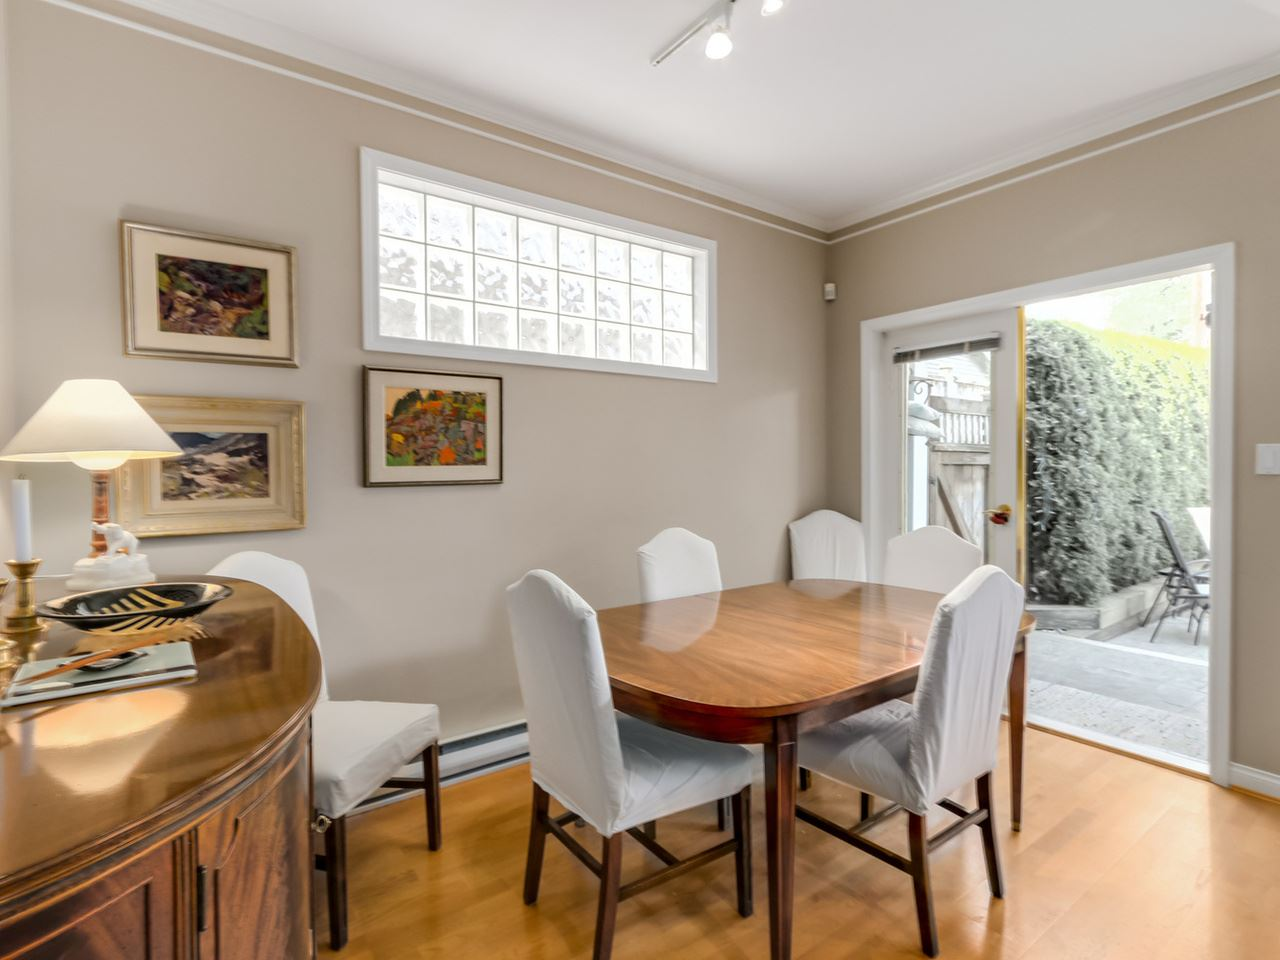 Photo 5: 1825 W 11TH Avenue in Vancouver: Kitsilano Townhouse for sale (Vancouver West)  : MLS® # R2061107